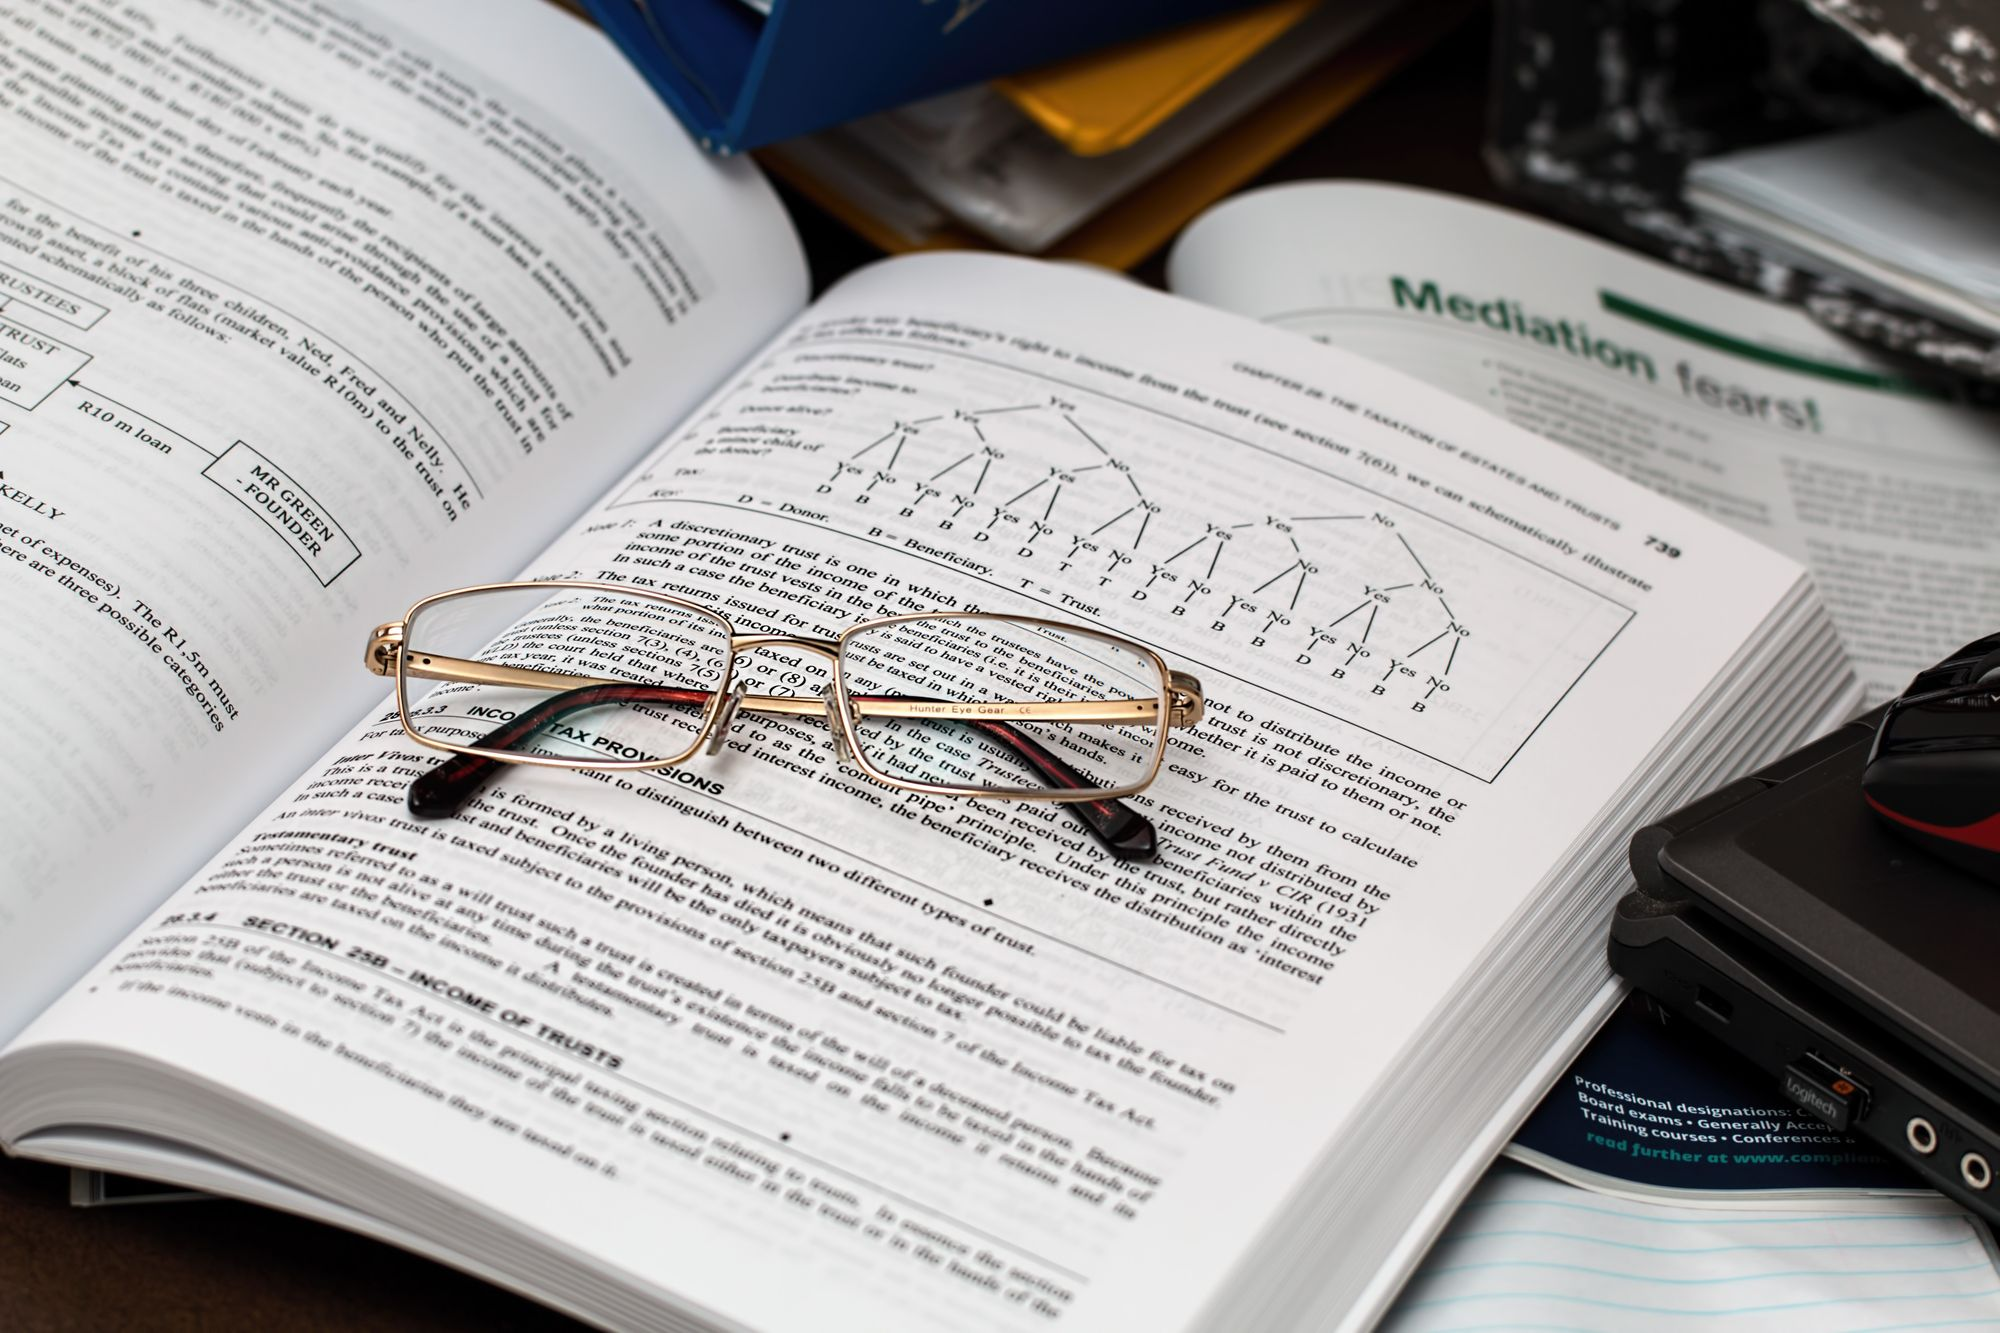 Course book with glasses on top of it